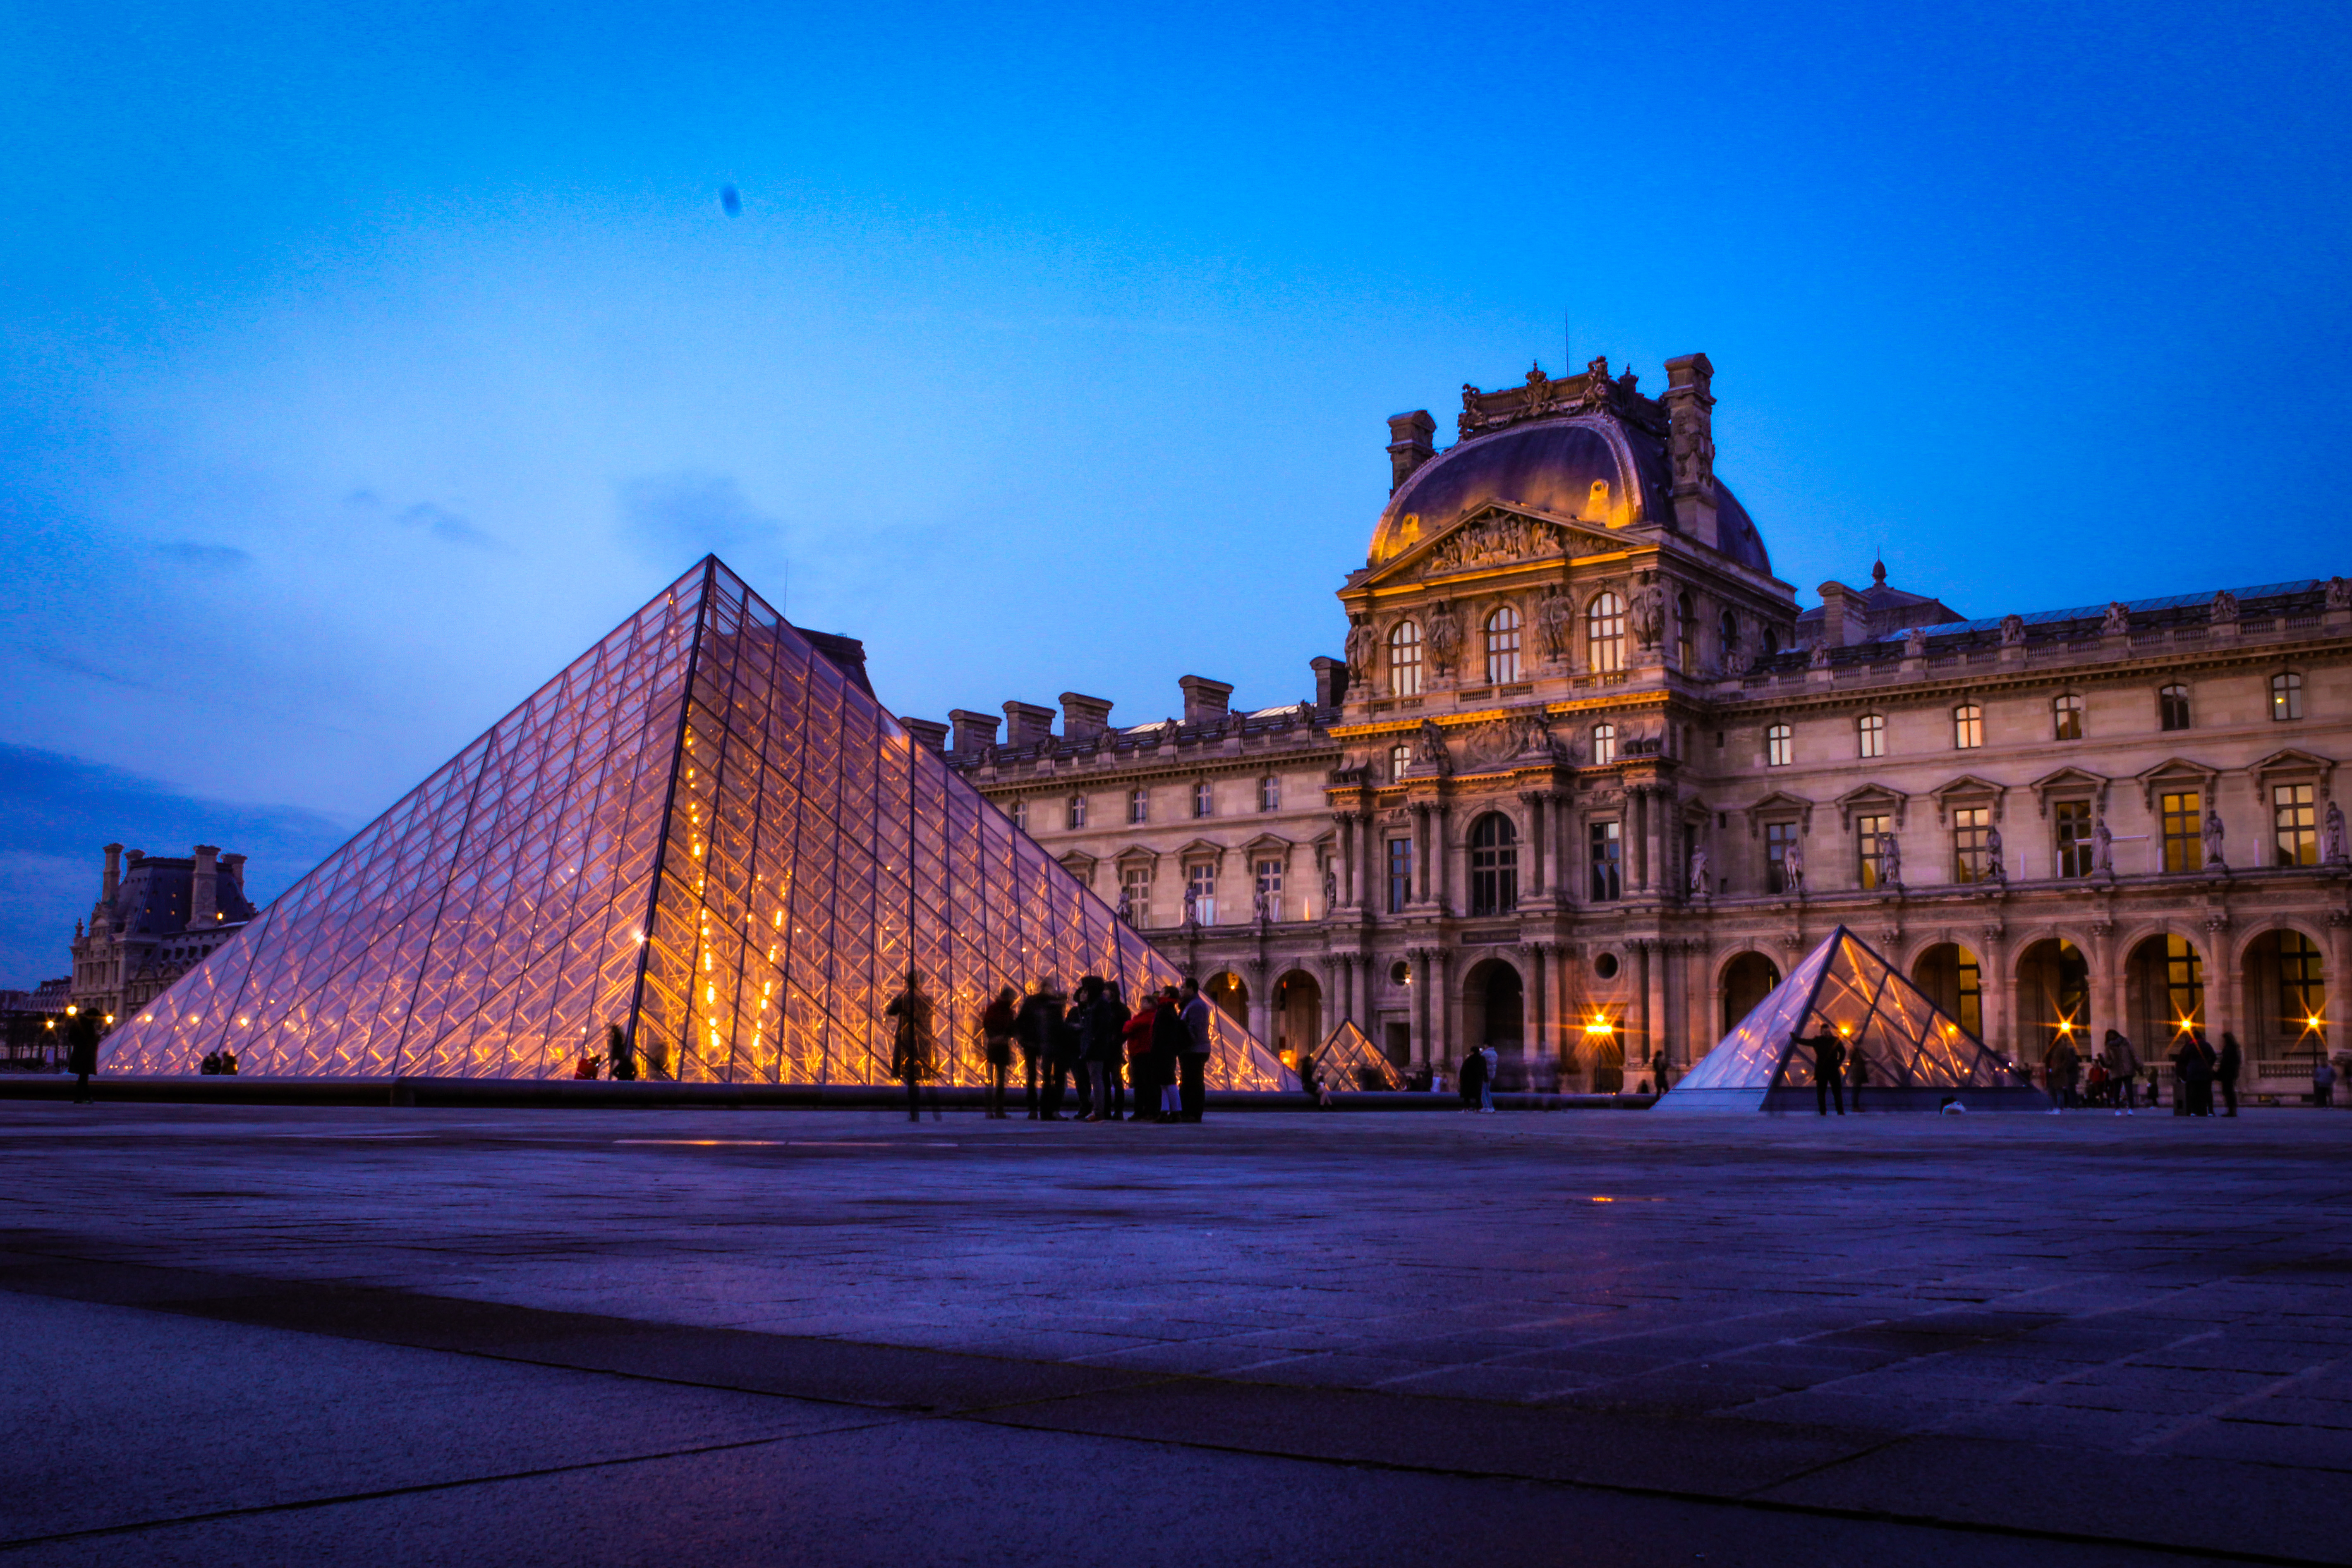 HEC Paris MBA student Tonny's picture of the Louvre at night